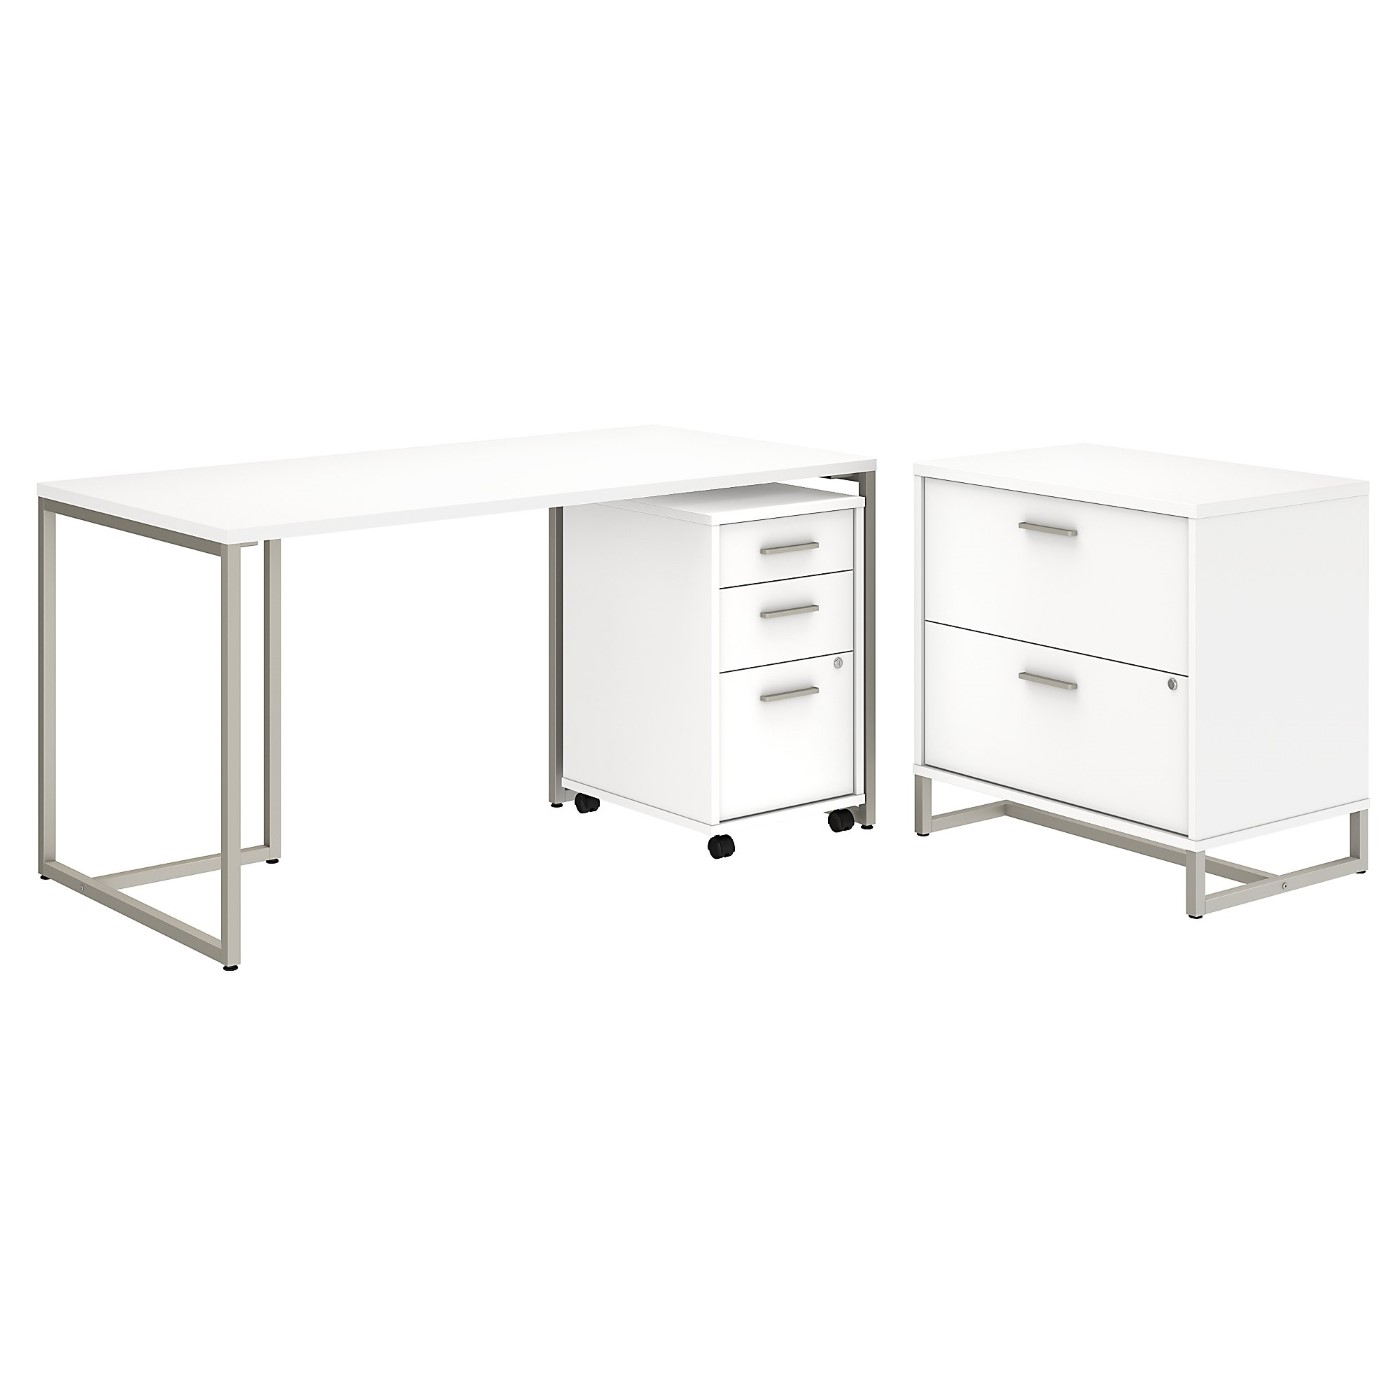 OFFICE BY KATHY IRELAND� METHOD 60W TABLE DESK WITH FILE CABINETS. FREE SHIPPING